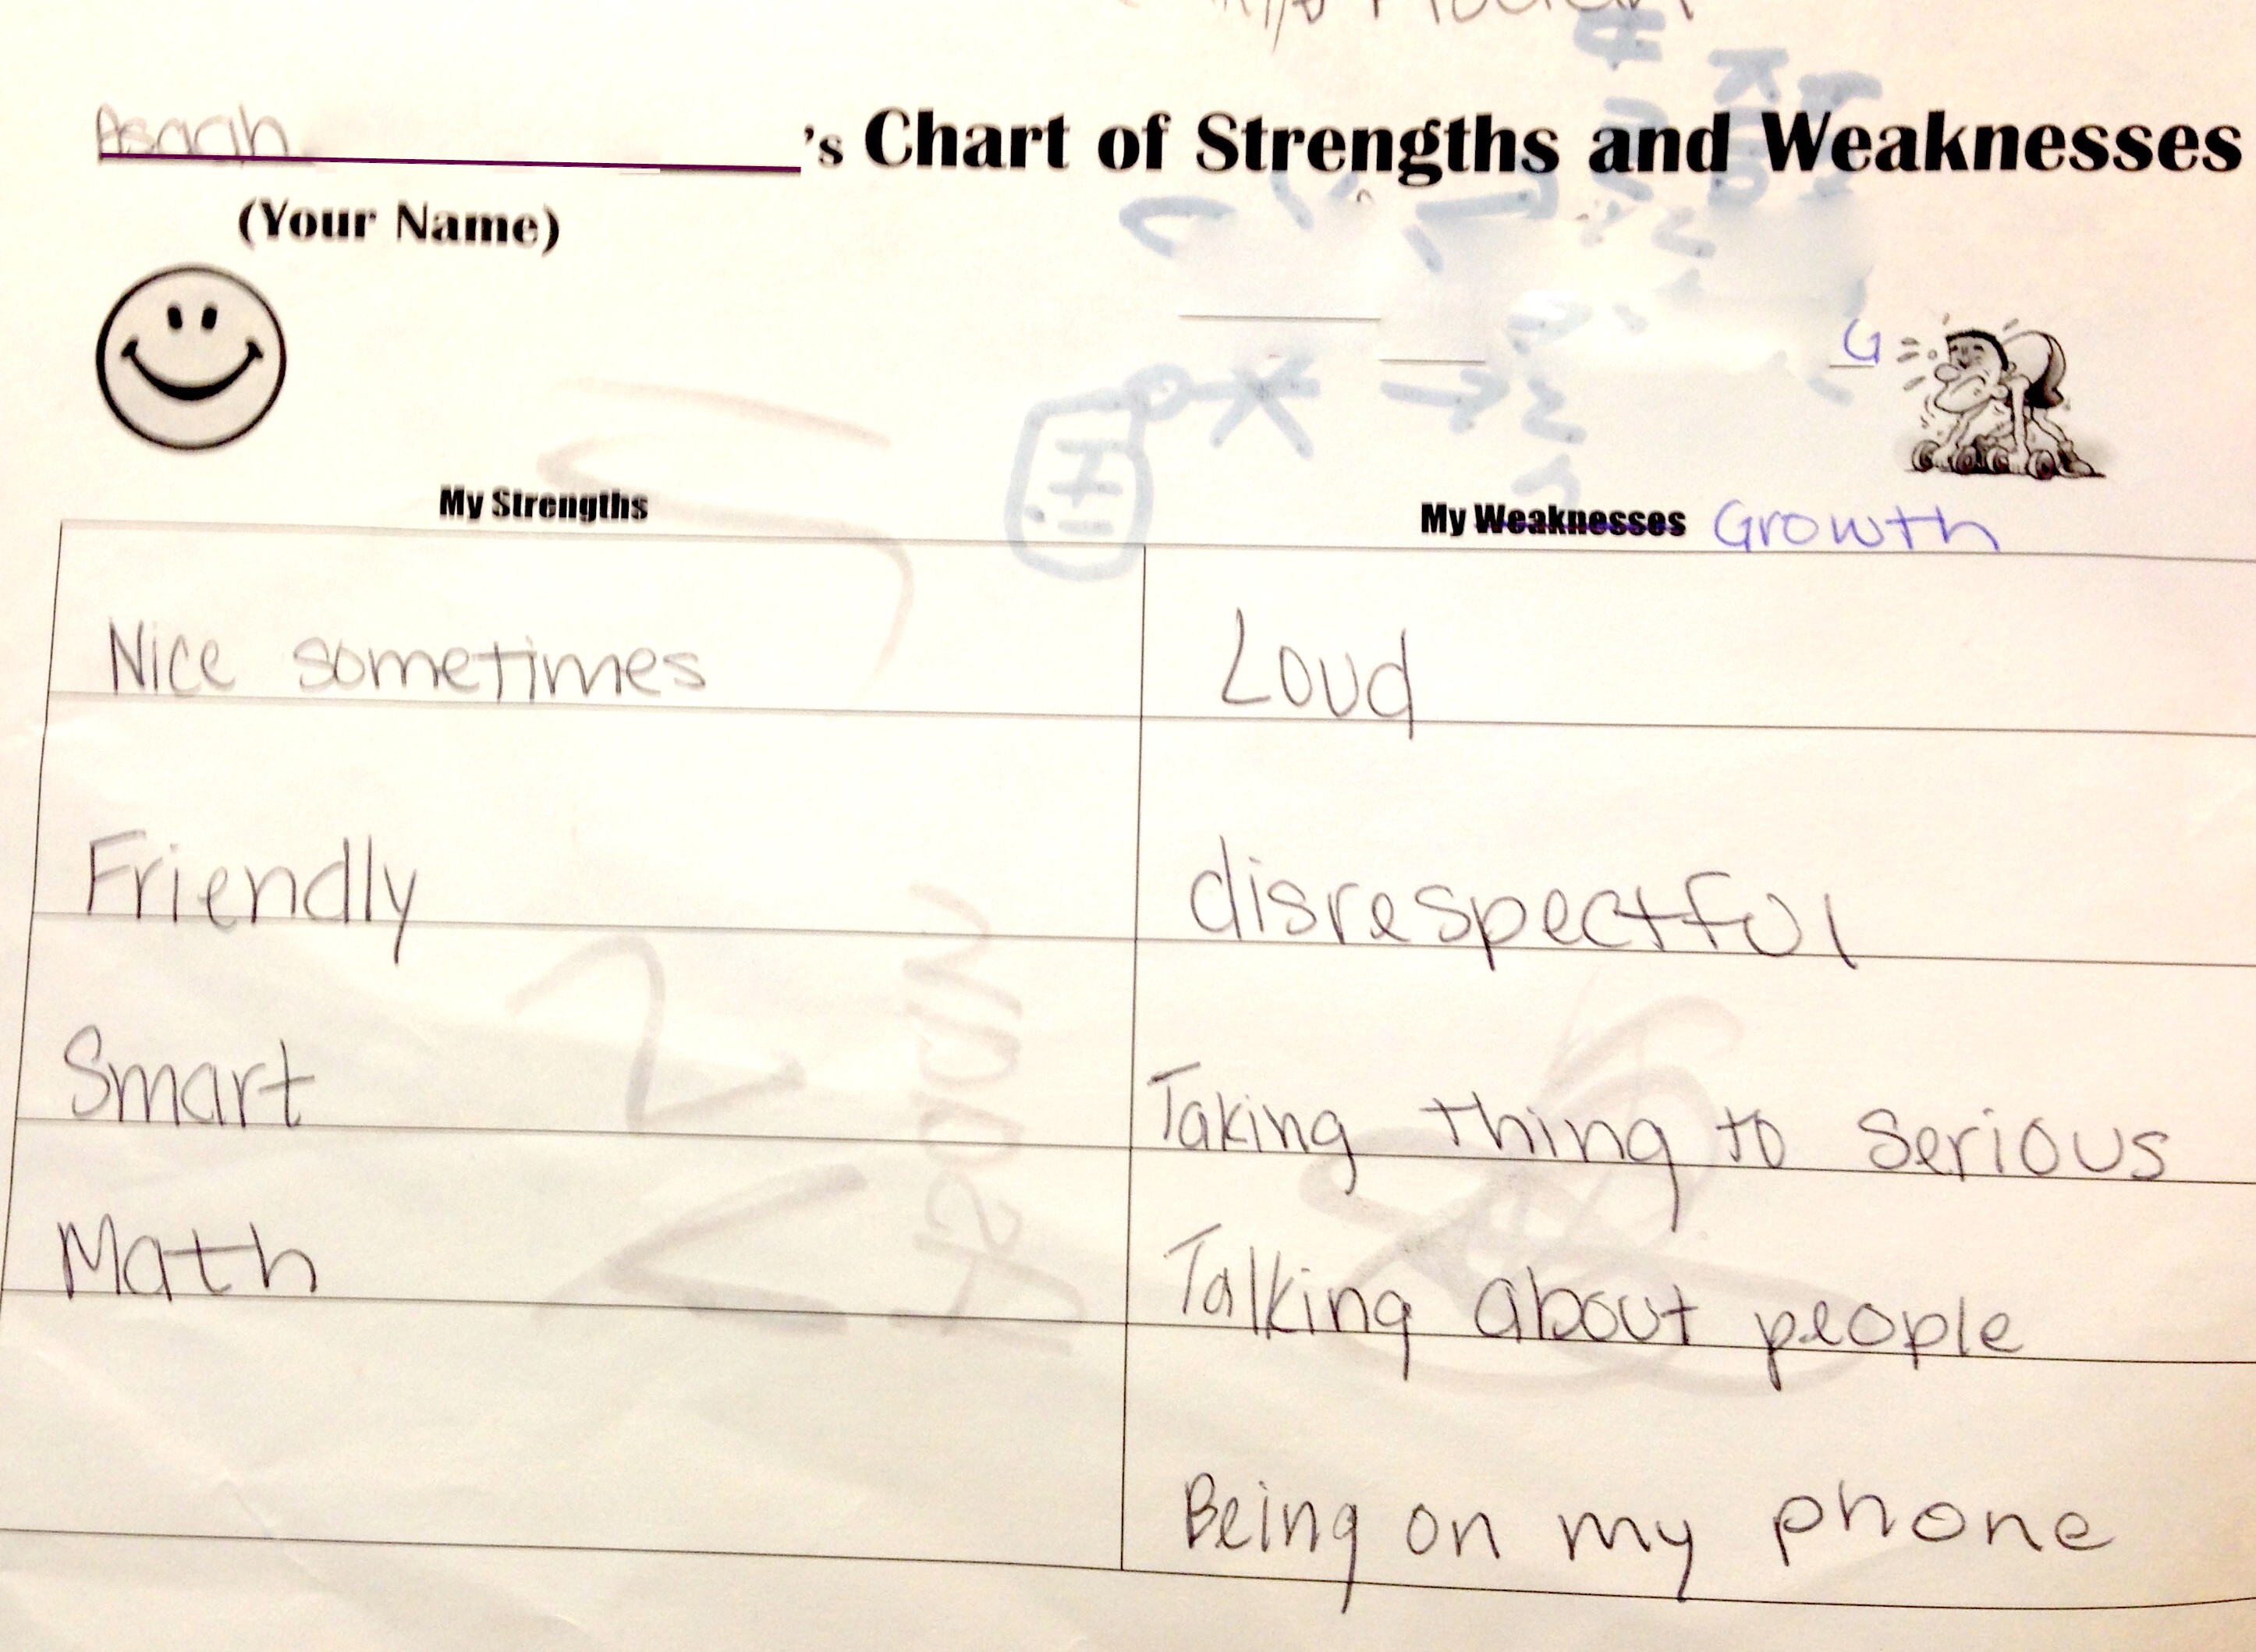 My Strengths As A Student My Strength And Weakness Essay 02 06